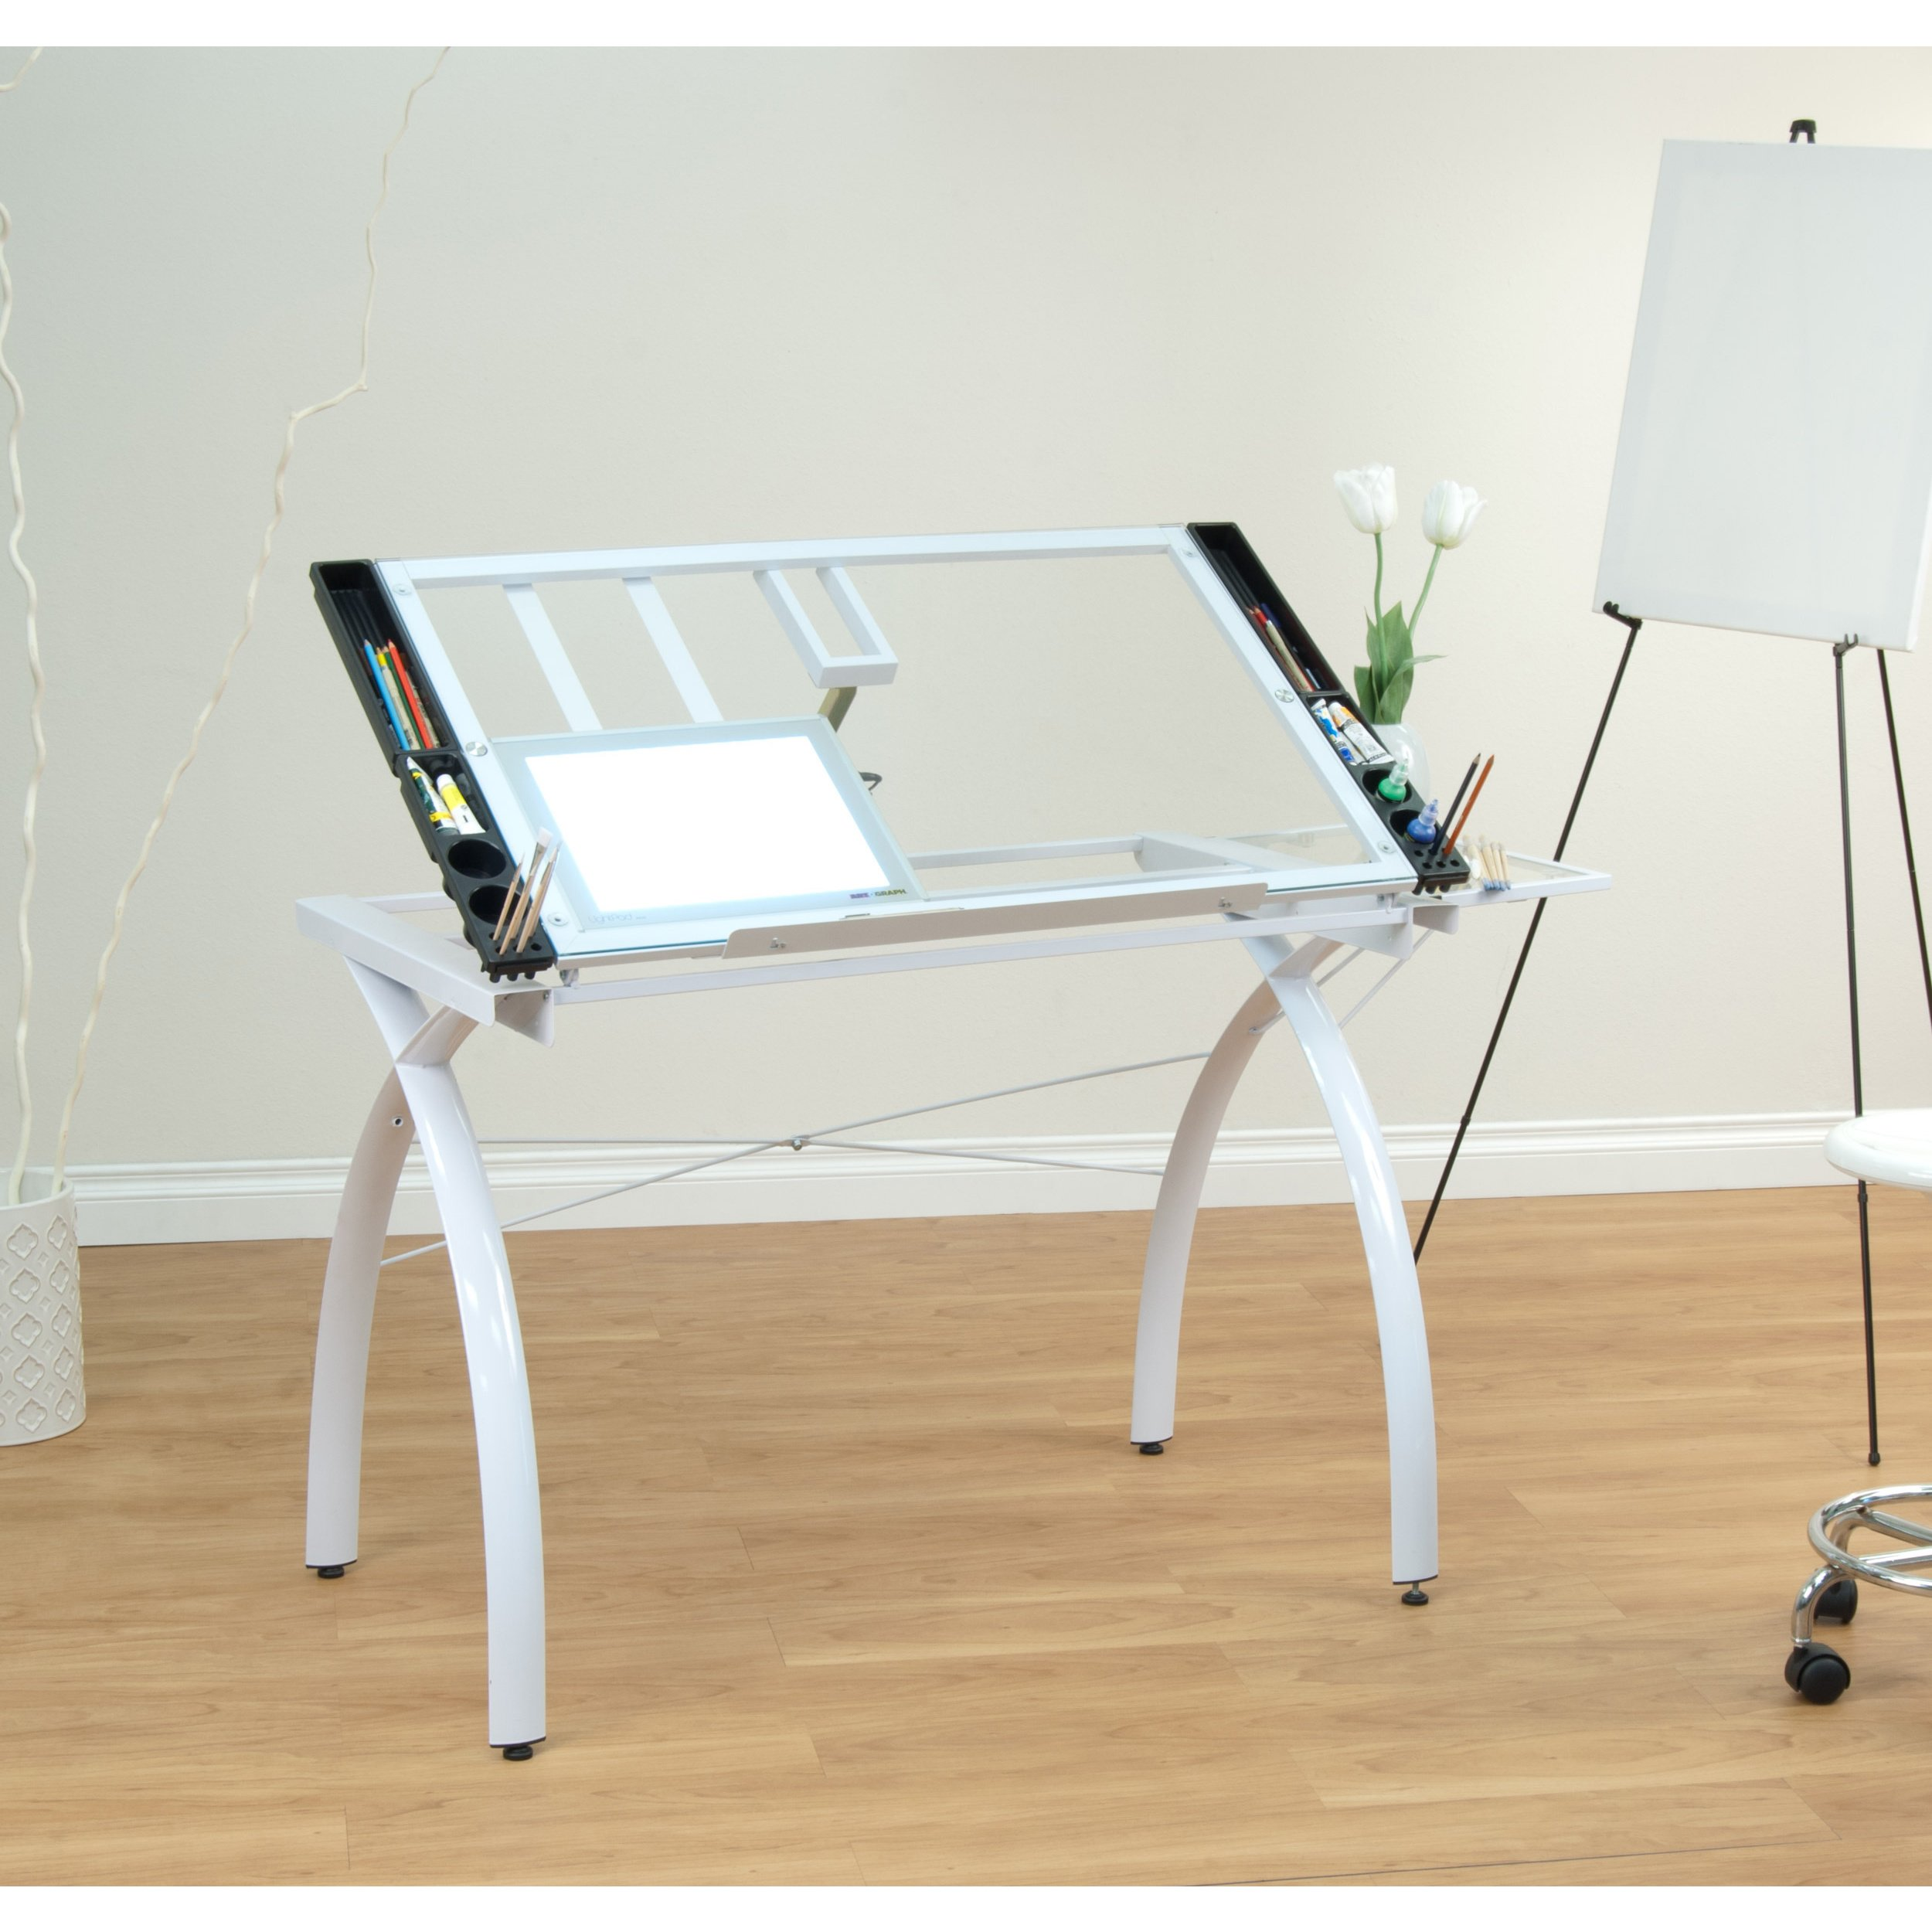 Modern Contemporary Drafting Hobby Craft Station Table with Adjustable Tempered Glass Top with Folding Shelf - Includes Modhaus Living Pen (White) by ModHaus Living (Image #1)